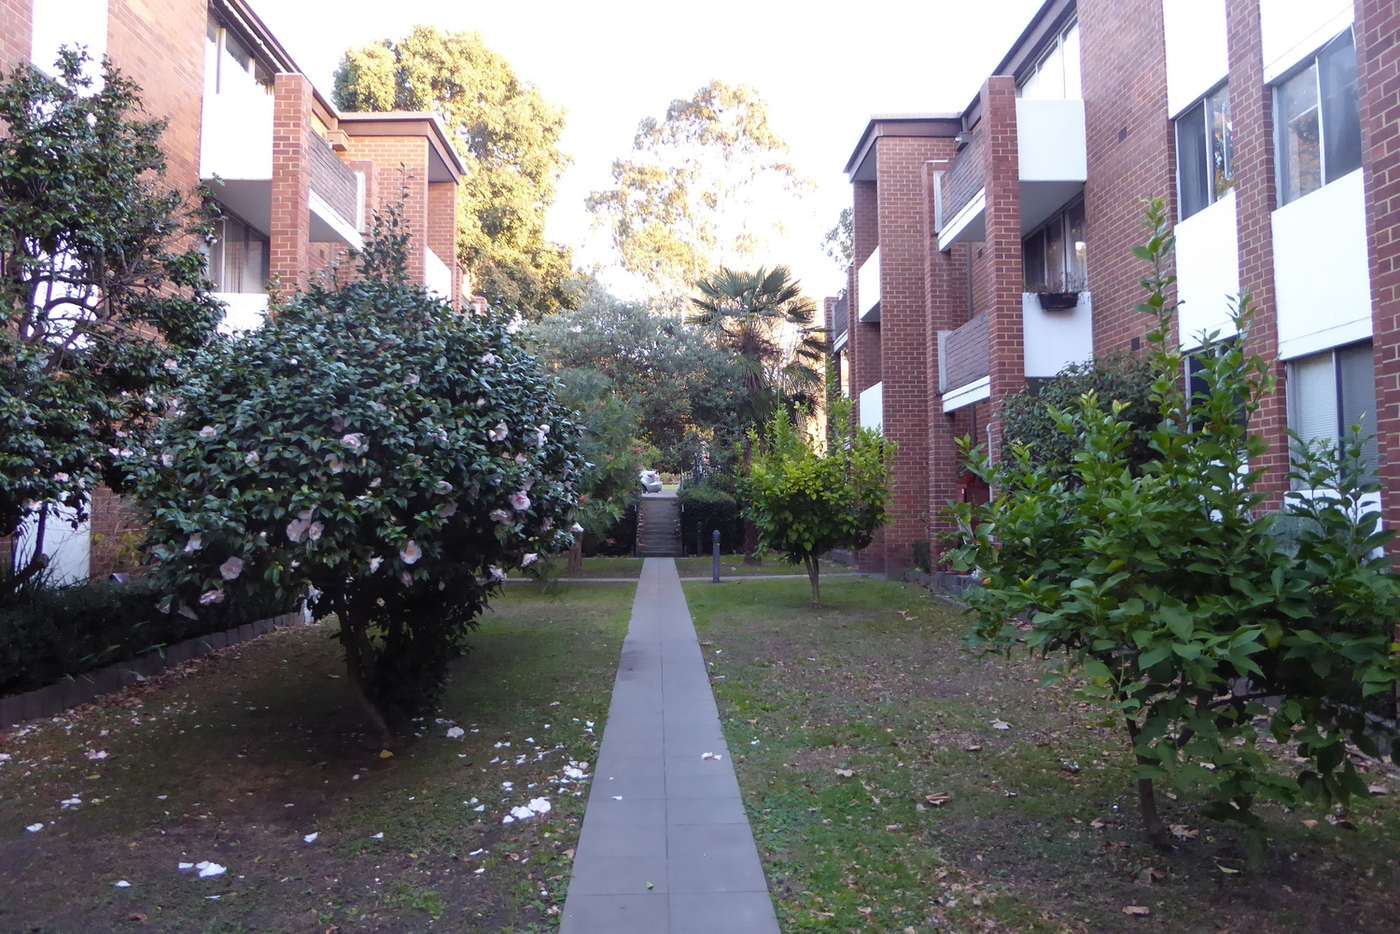 Main view of Homely apartment listing, 9/70 O'Shanassy Street, North Melbourne VIC 3051